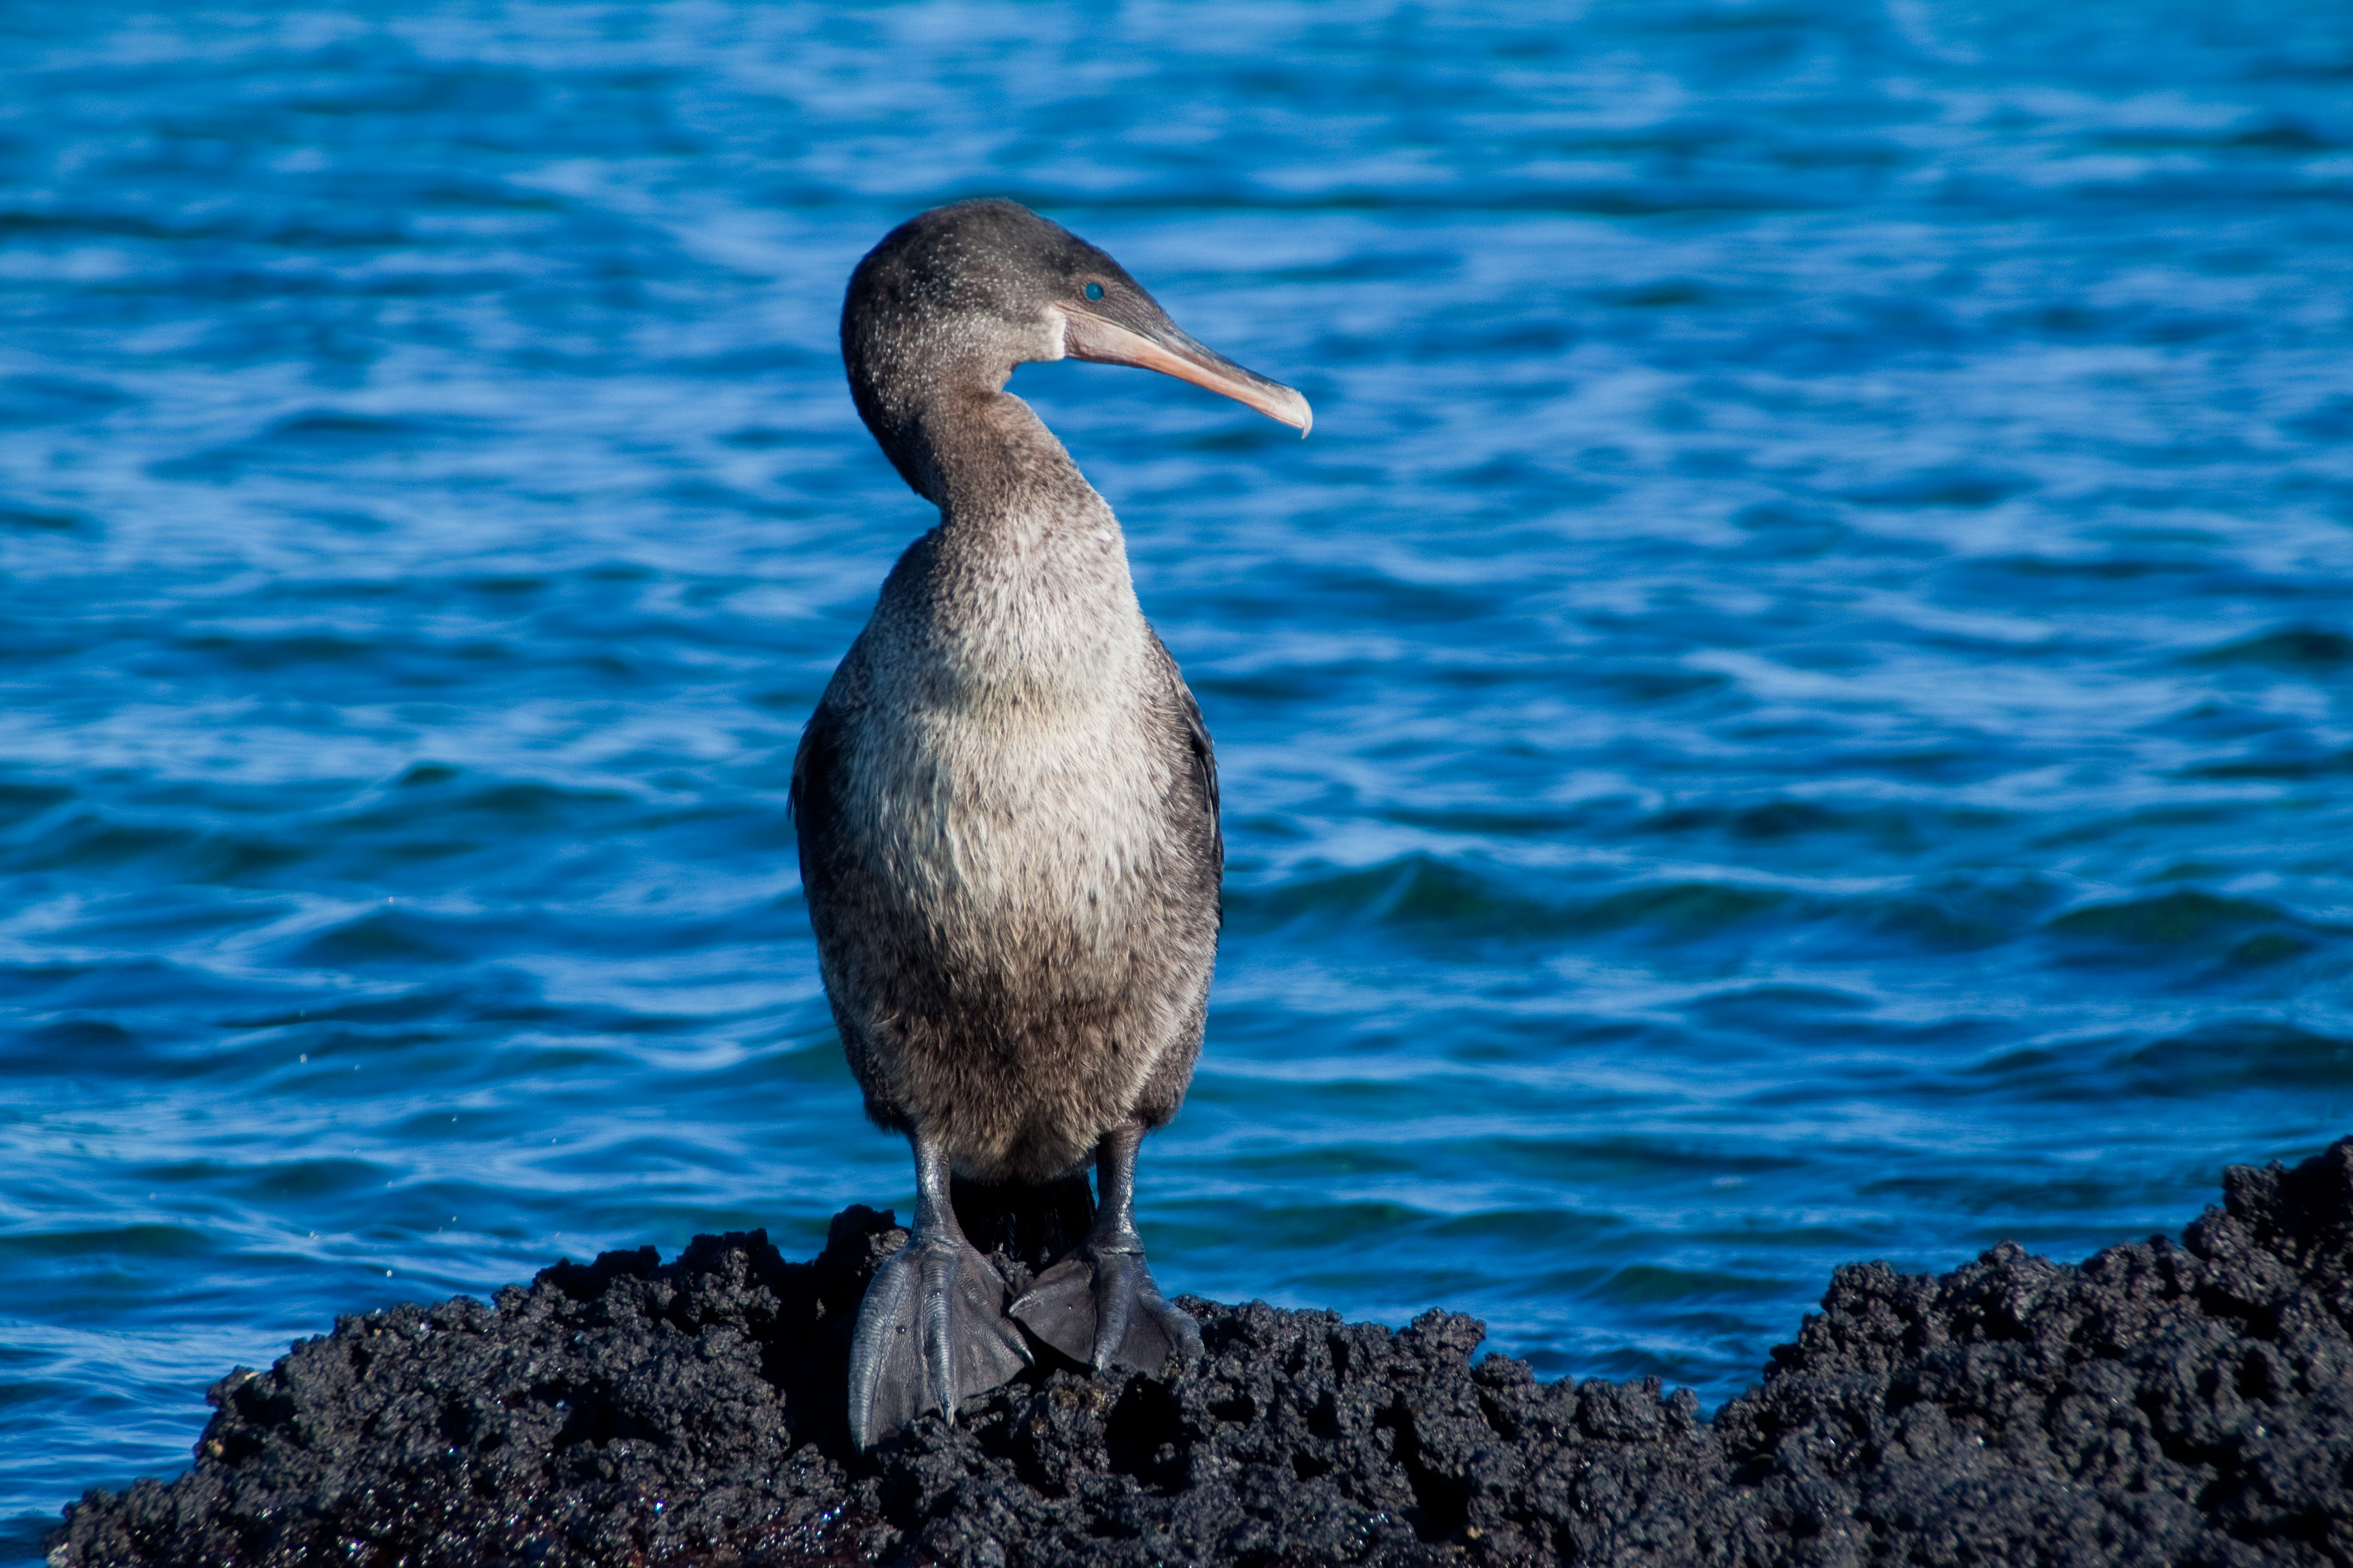 Galapagos Encounter - Archipel I (itinerary A)